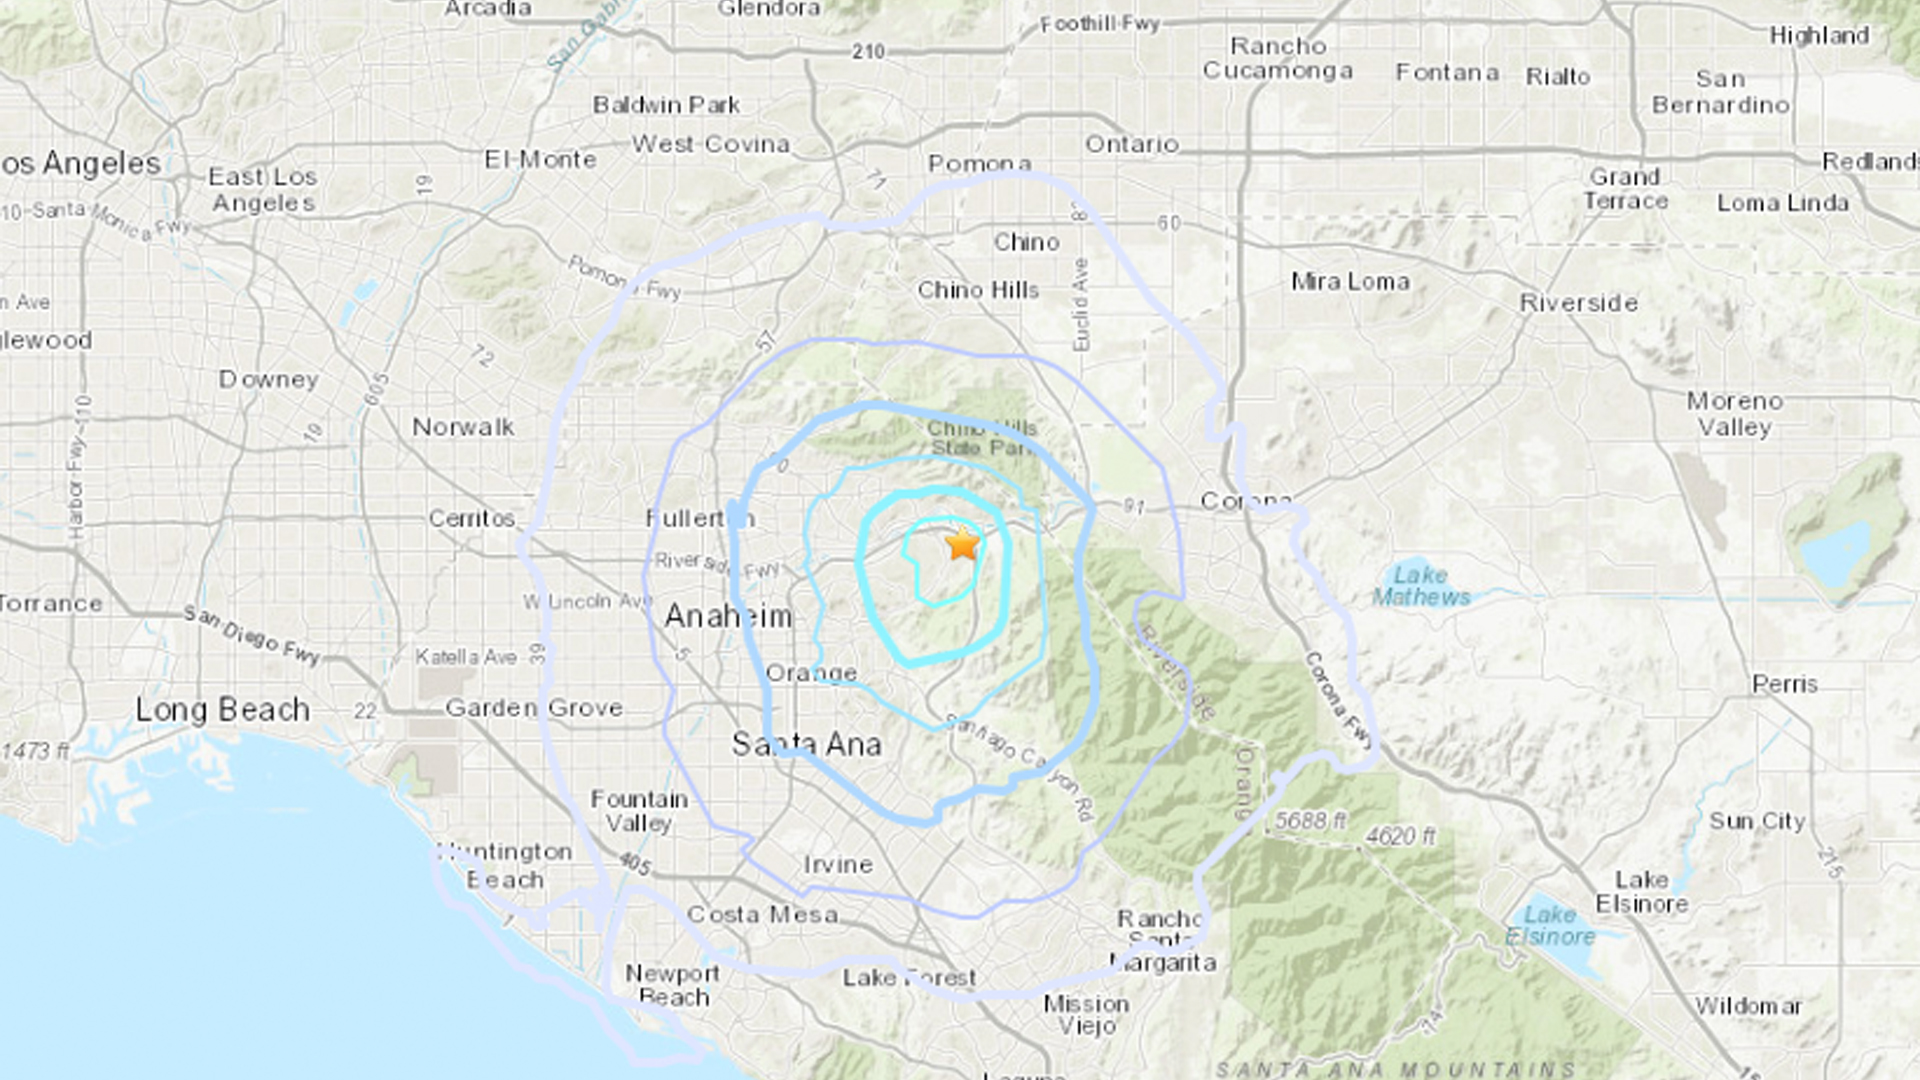 An earthquake struck near Yorba Linda on April 3, 2019. (Credit: USGS)